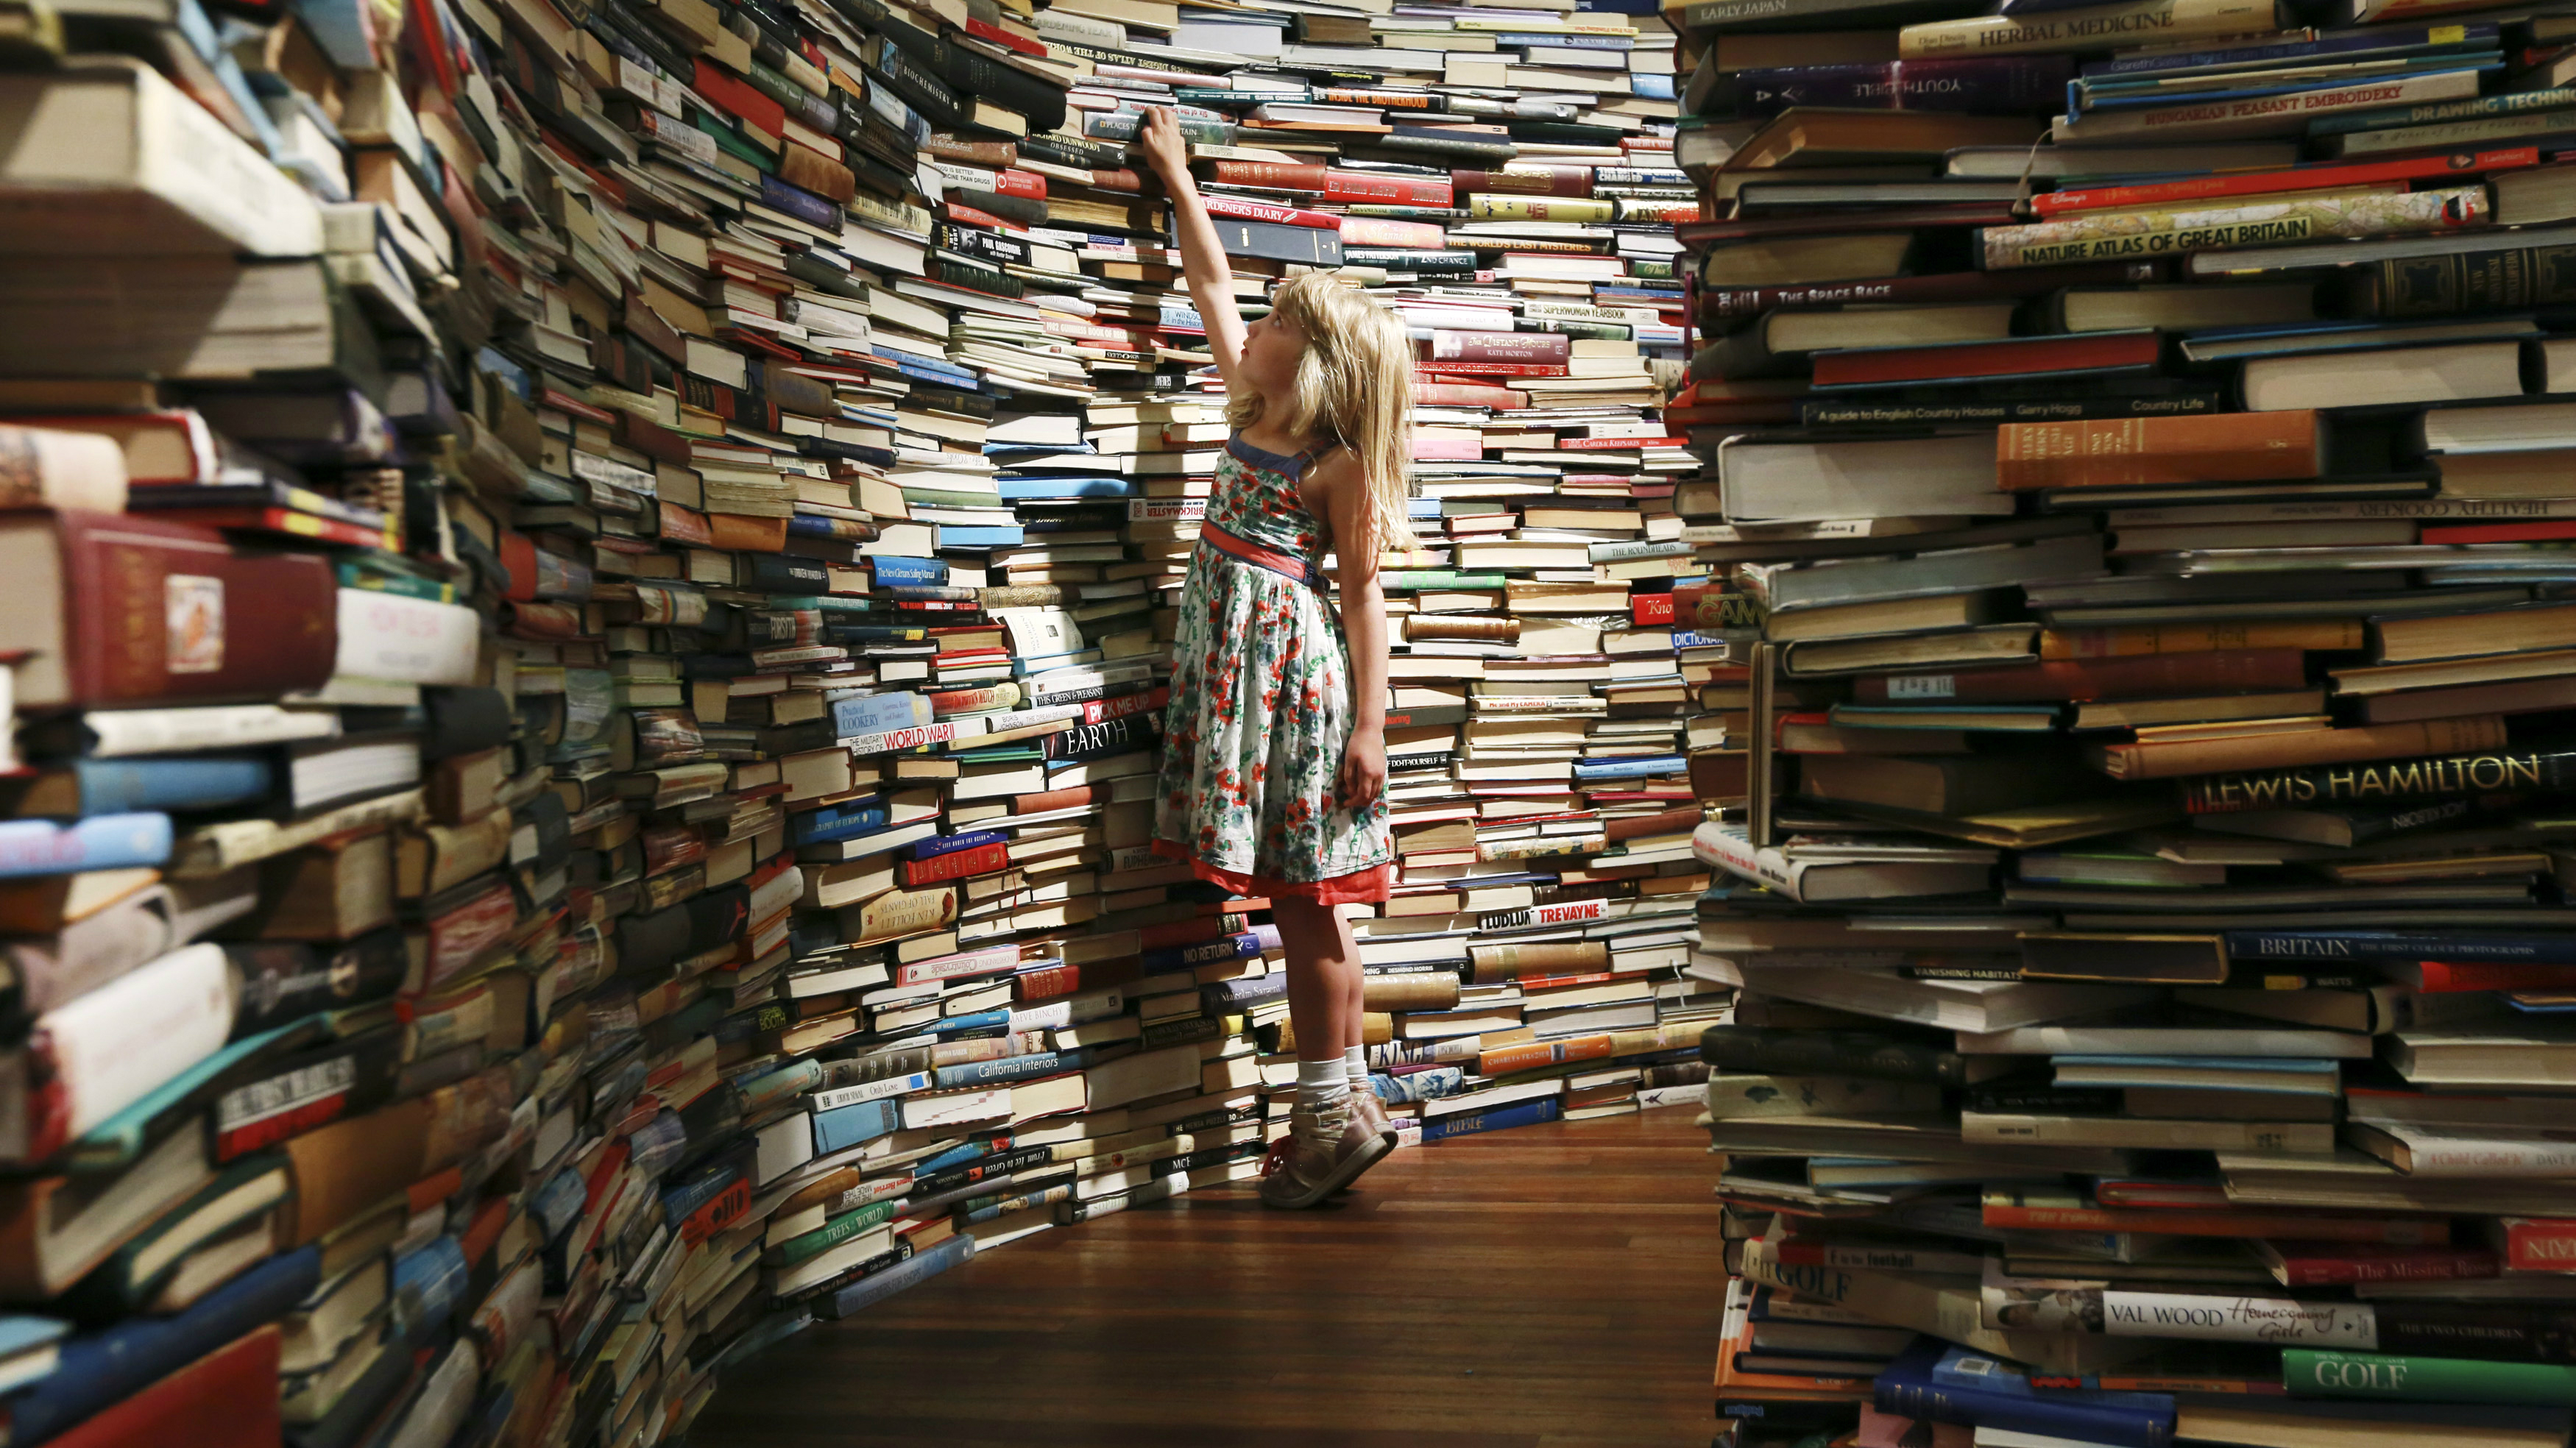 """Leona, 7, poses inside a labyrinth installation made up of 250,000 books titled """"aMAZEme"""" by Marcos Saboya and Gualter Pupo at the Royal Festival Hall in central London July 31, 2012."""